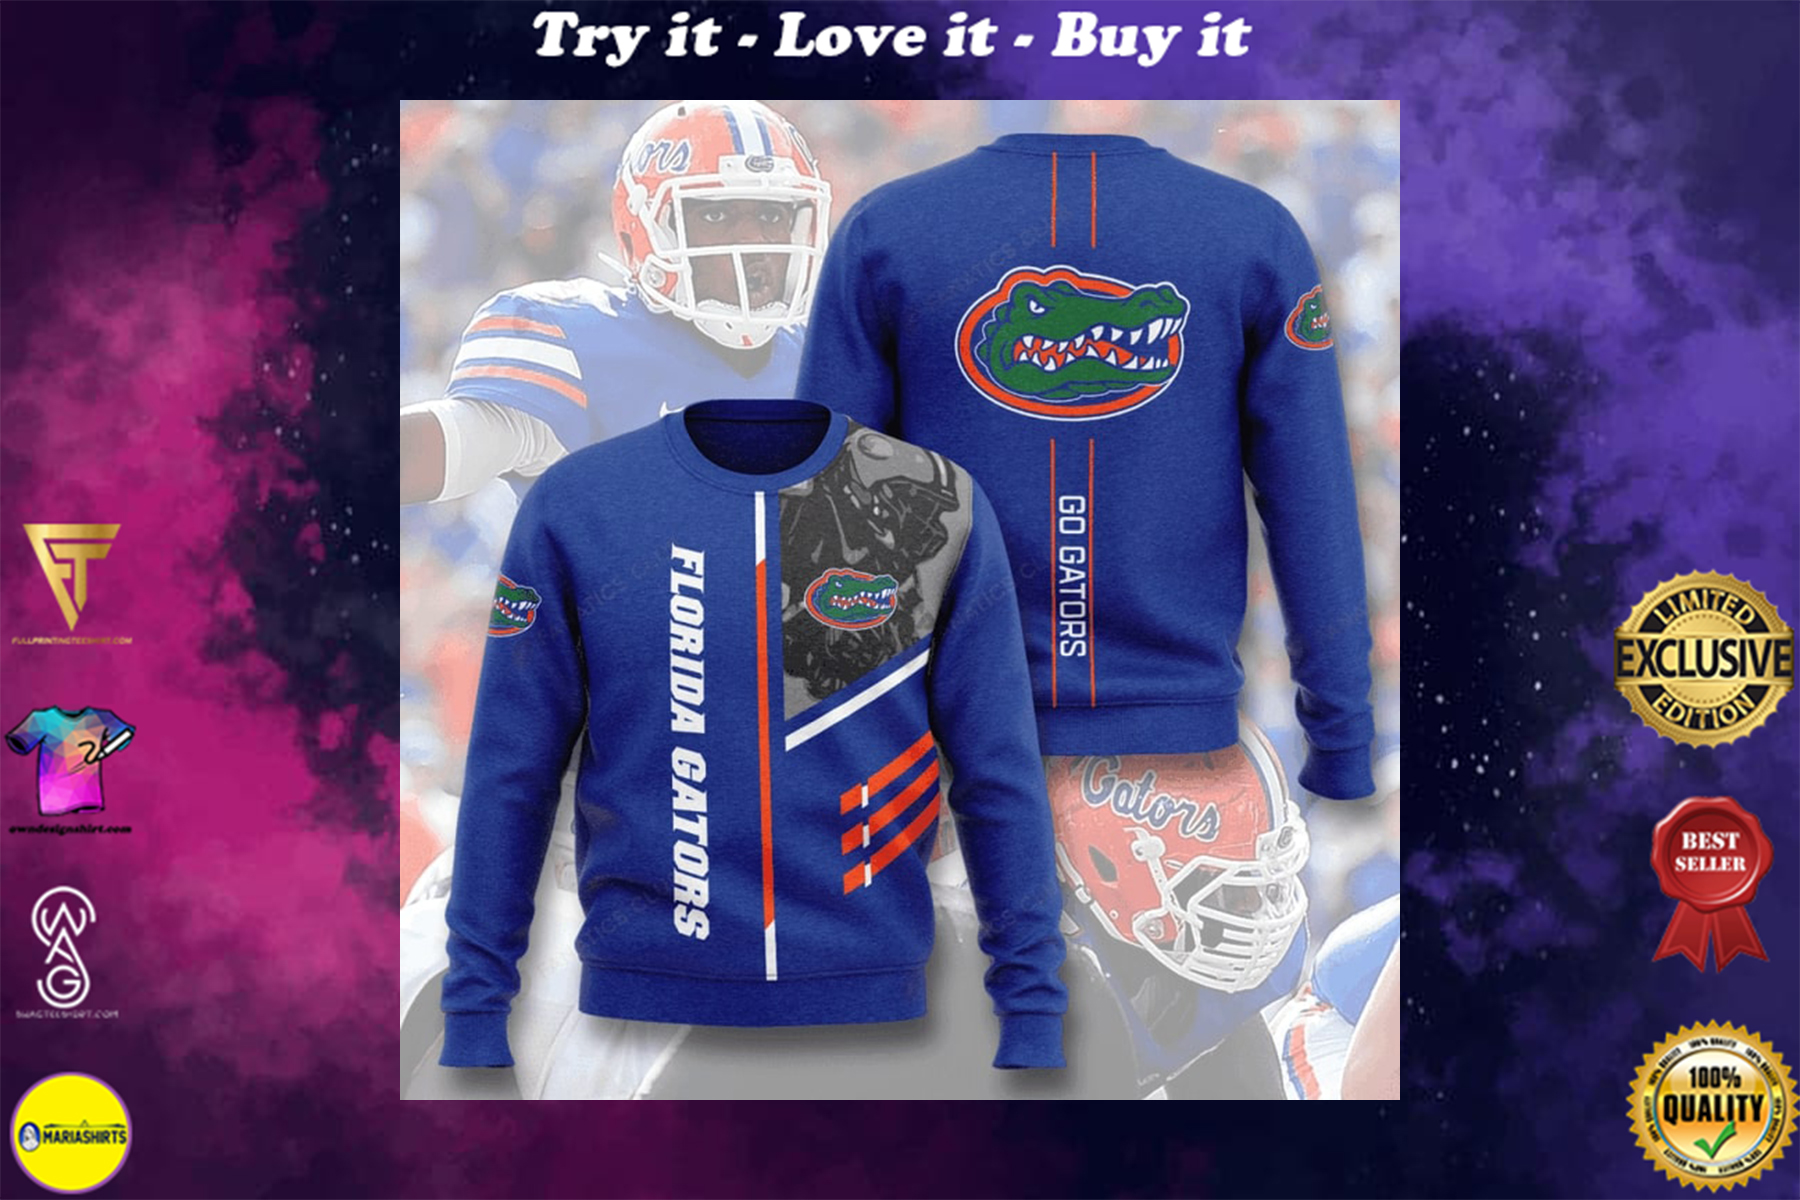 [special edition] florida gators football go gators full printing ugly sweater - maria